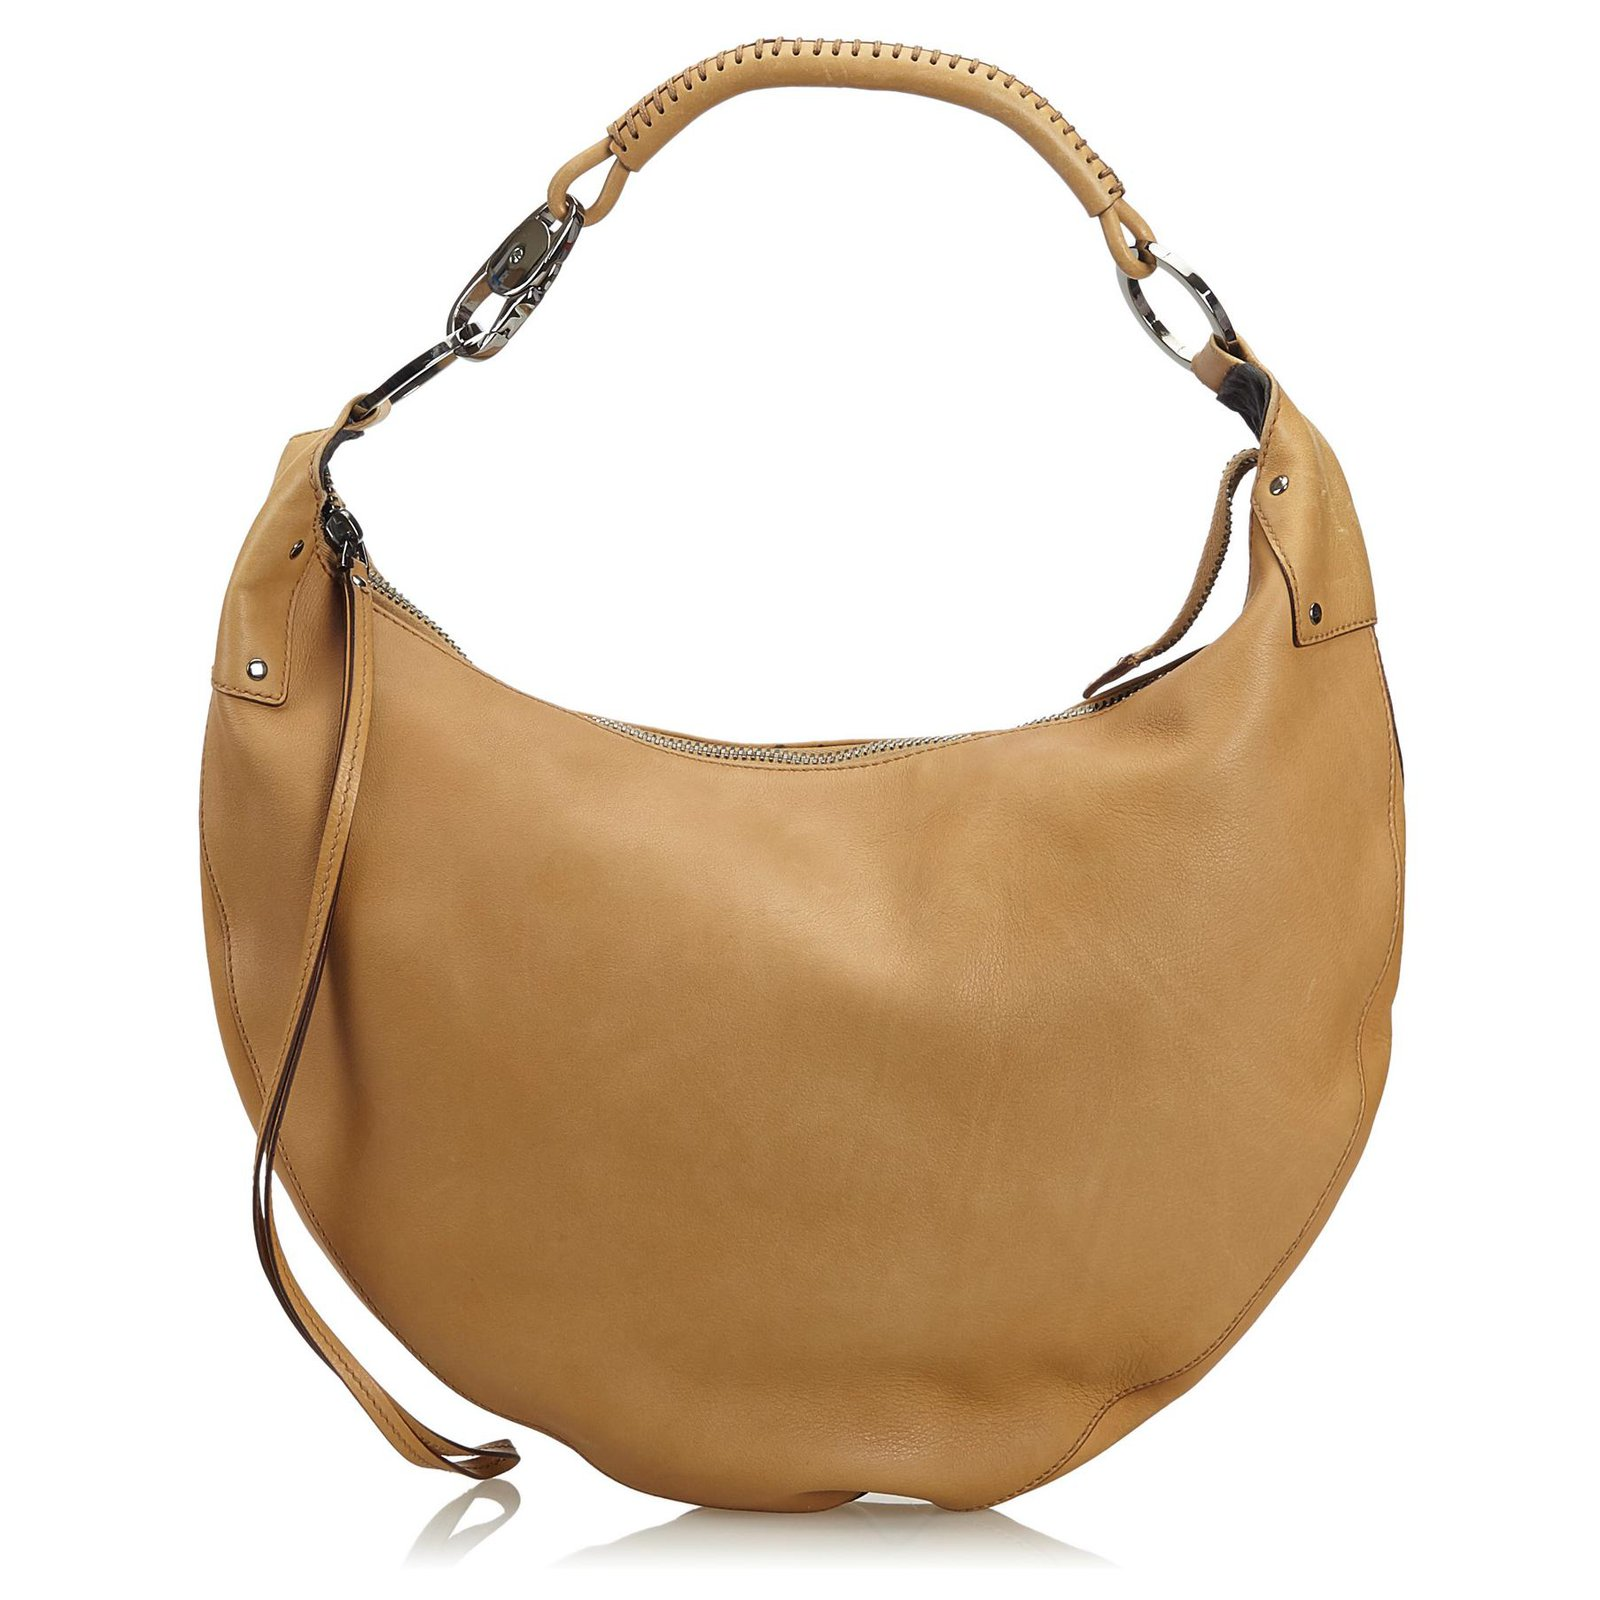 c6992d6e1 Gucci Gucci Brown Leather Half Moon Hobo Bag Handbags Leather,Other Brown  ref.122865